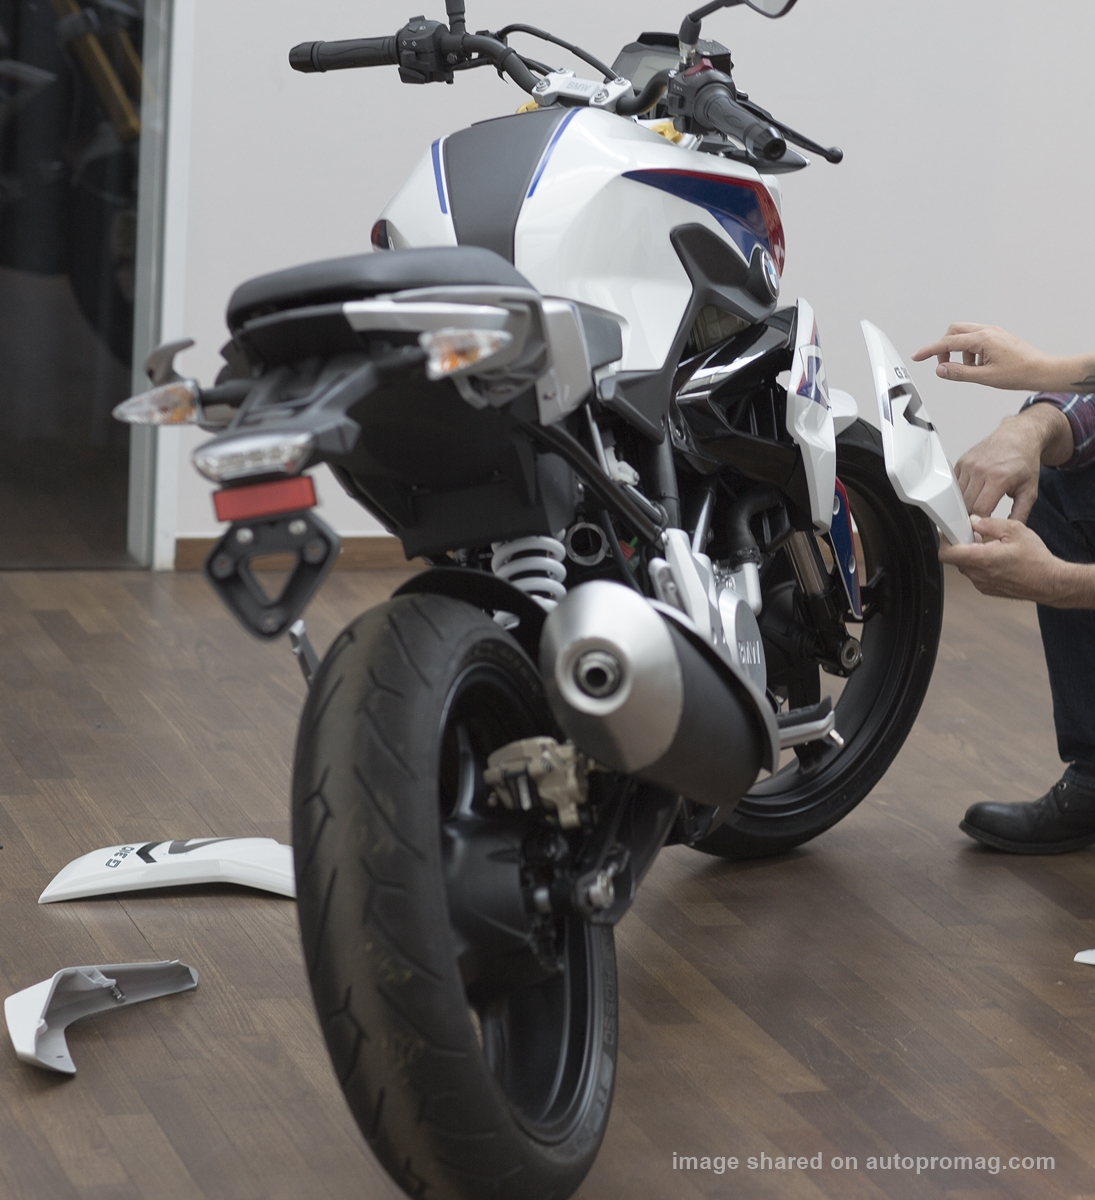 2018 bmw g310r. modren 2018 2018 bmw g310r specifications and features for bmw g310r